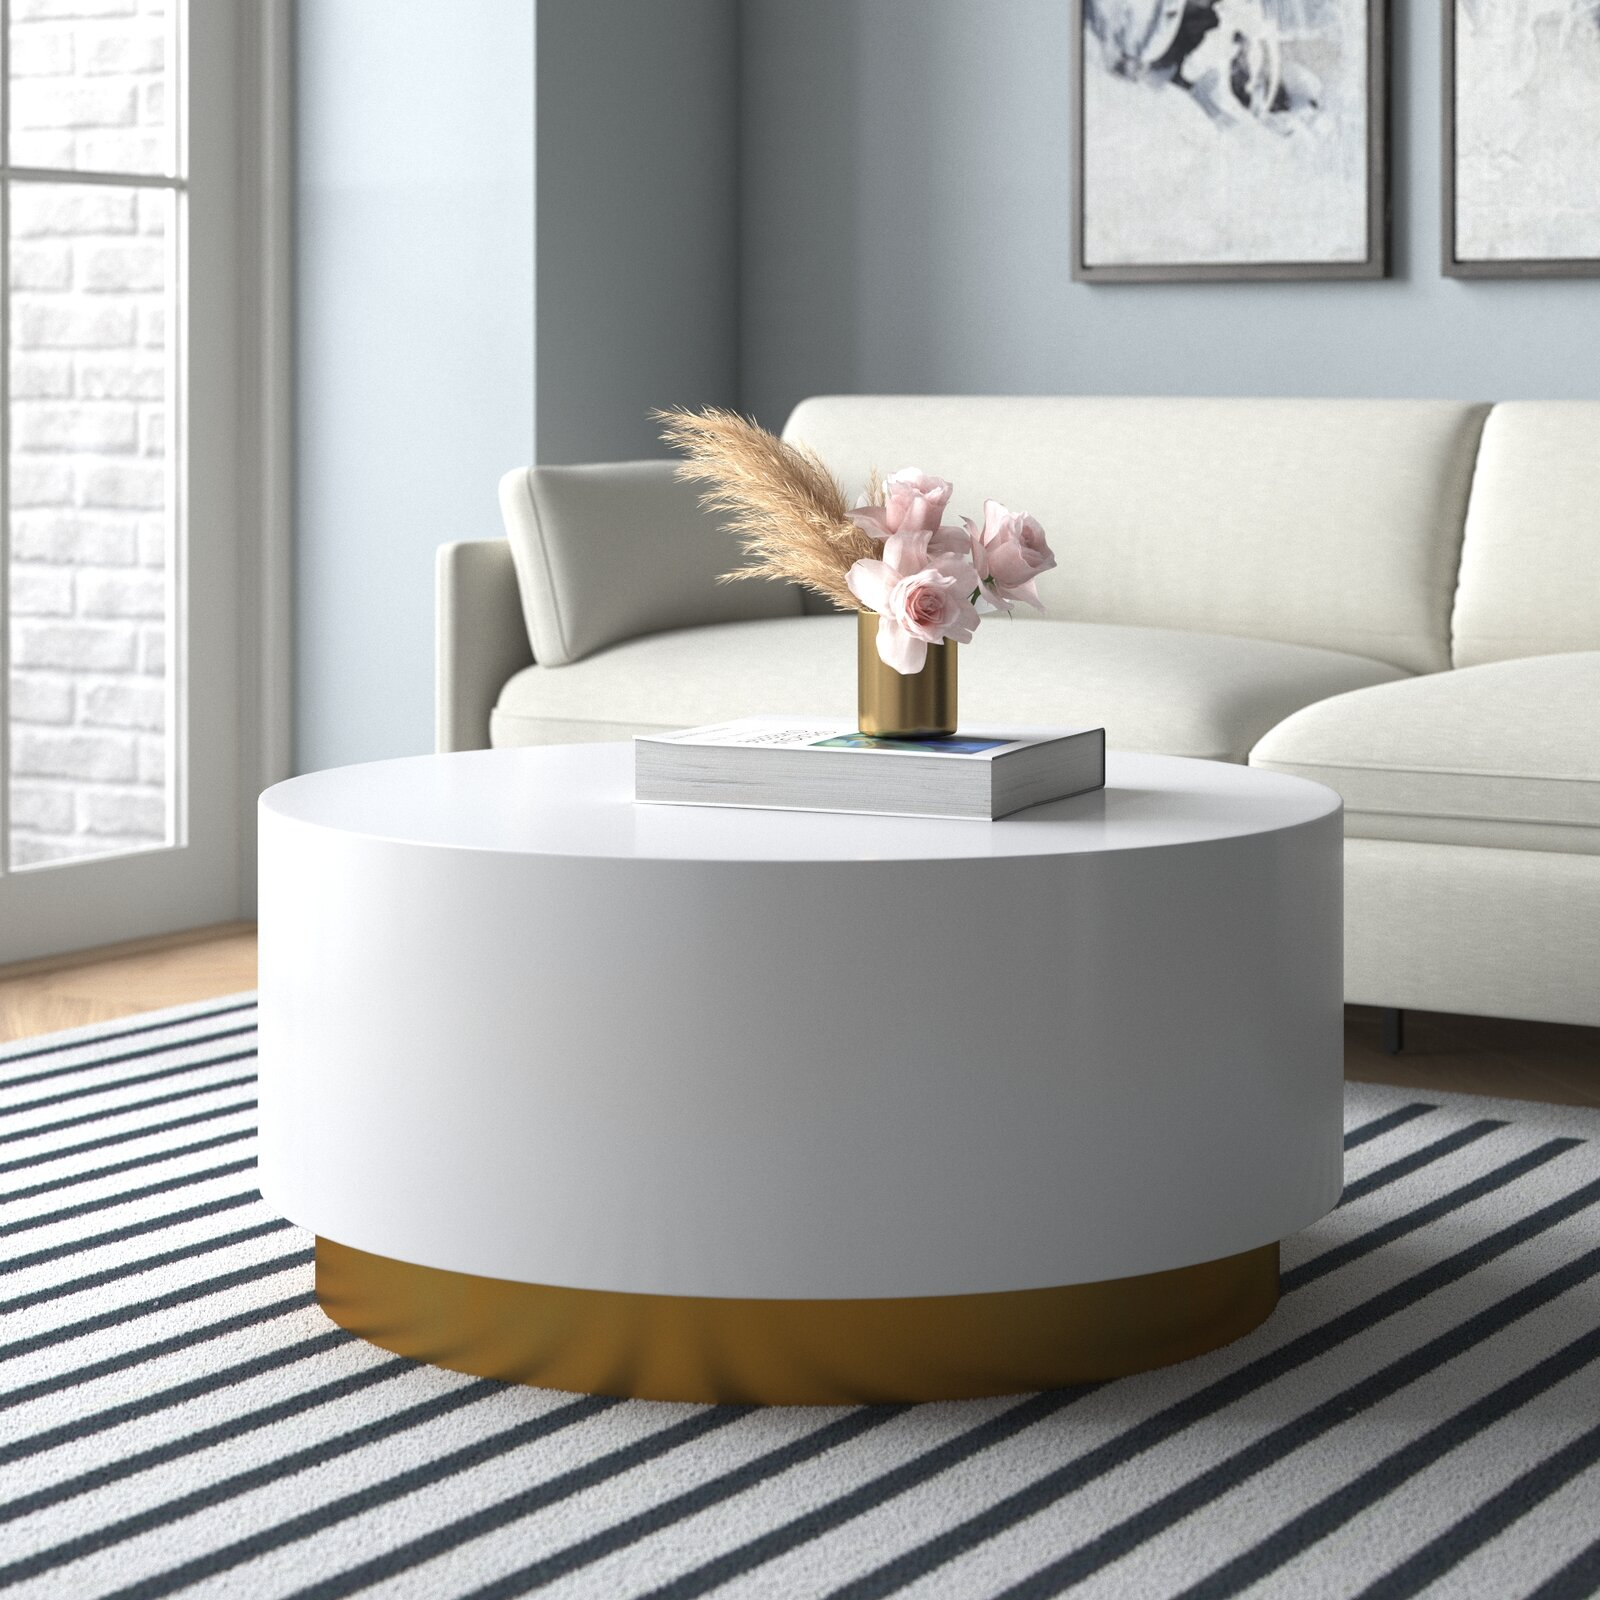 thick-round-white-and-gold-coffee-table-minimalistic-luxury-furniture-for-sale-online-unique-living-room-design-inspiration